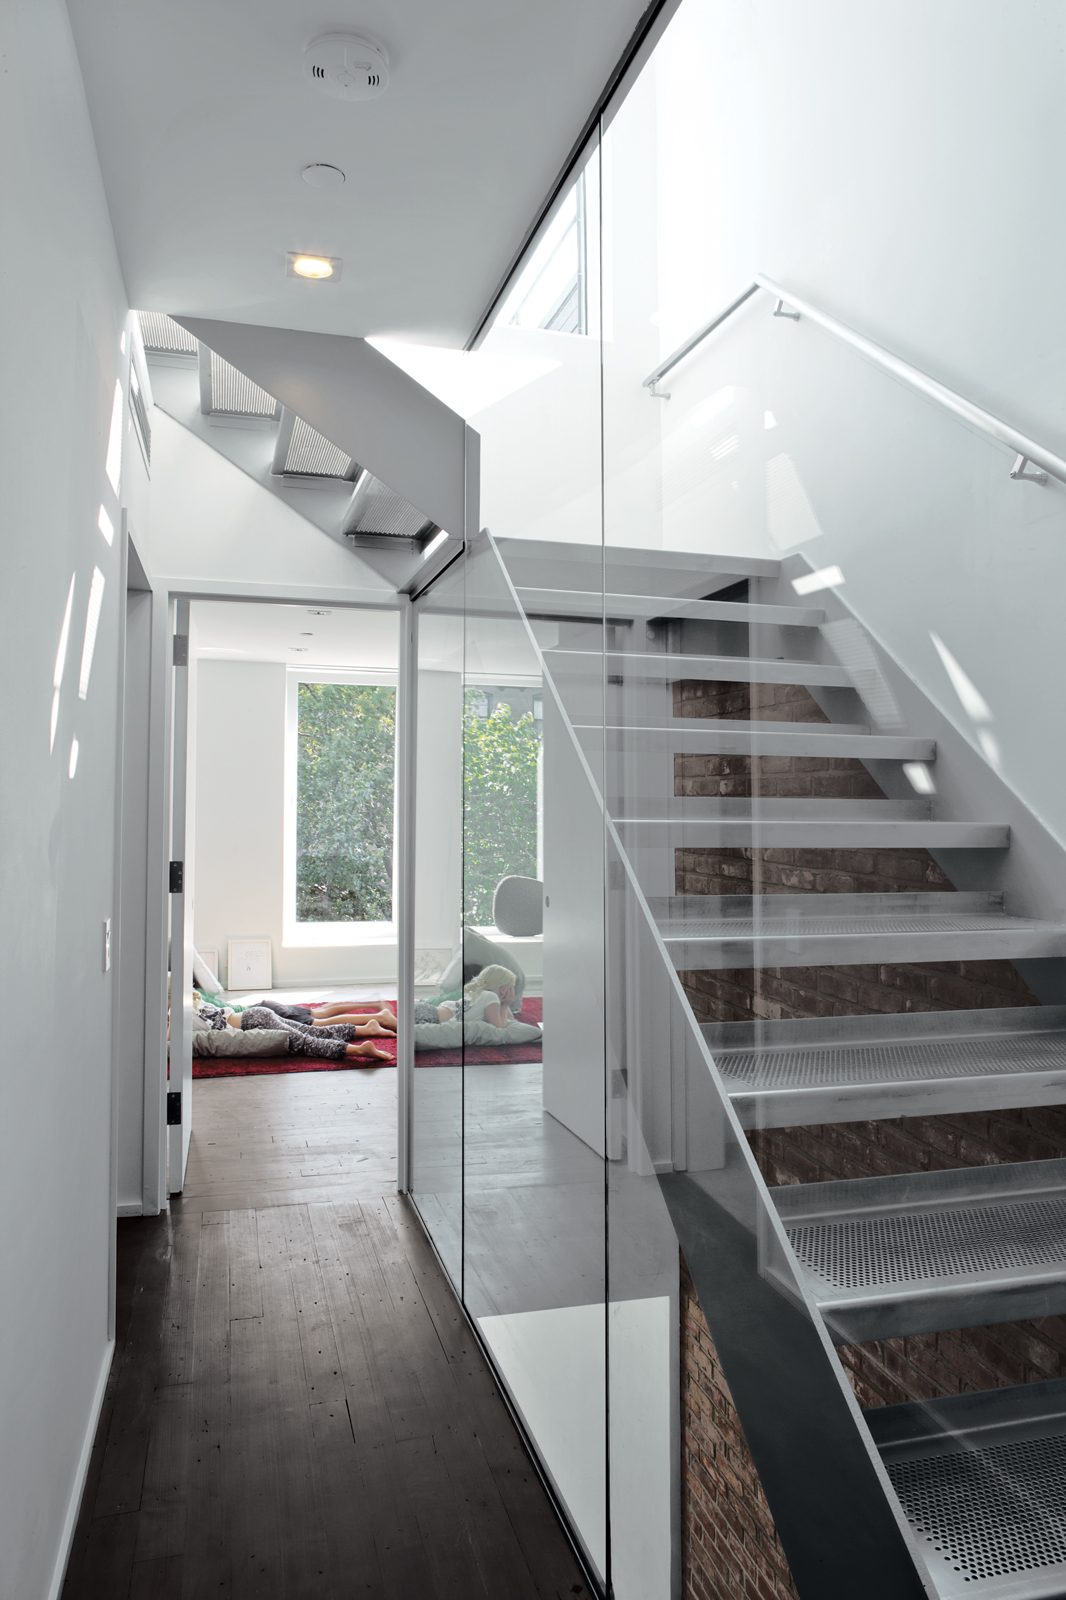 Custom stainless steel staircase with perforated steel treads